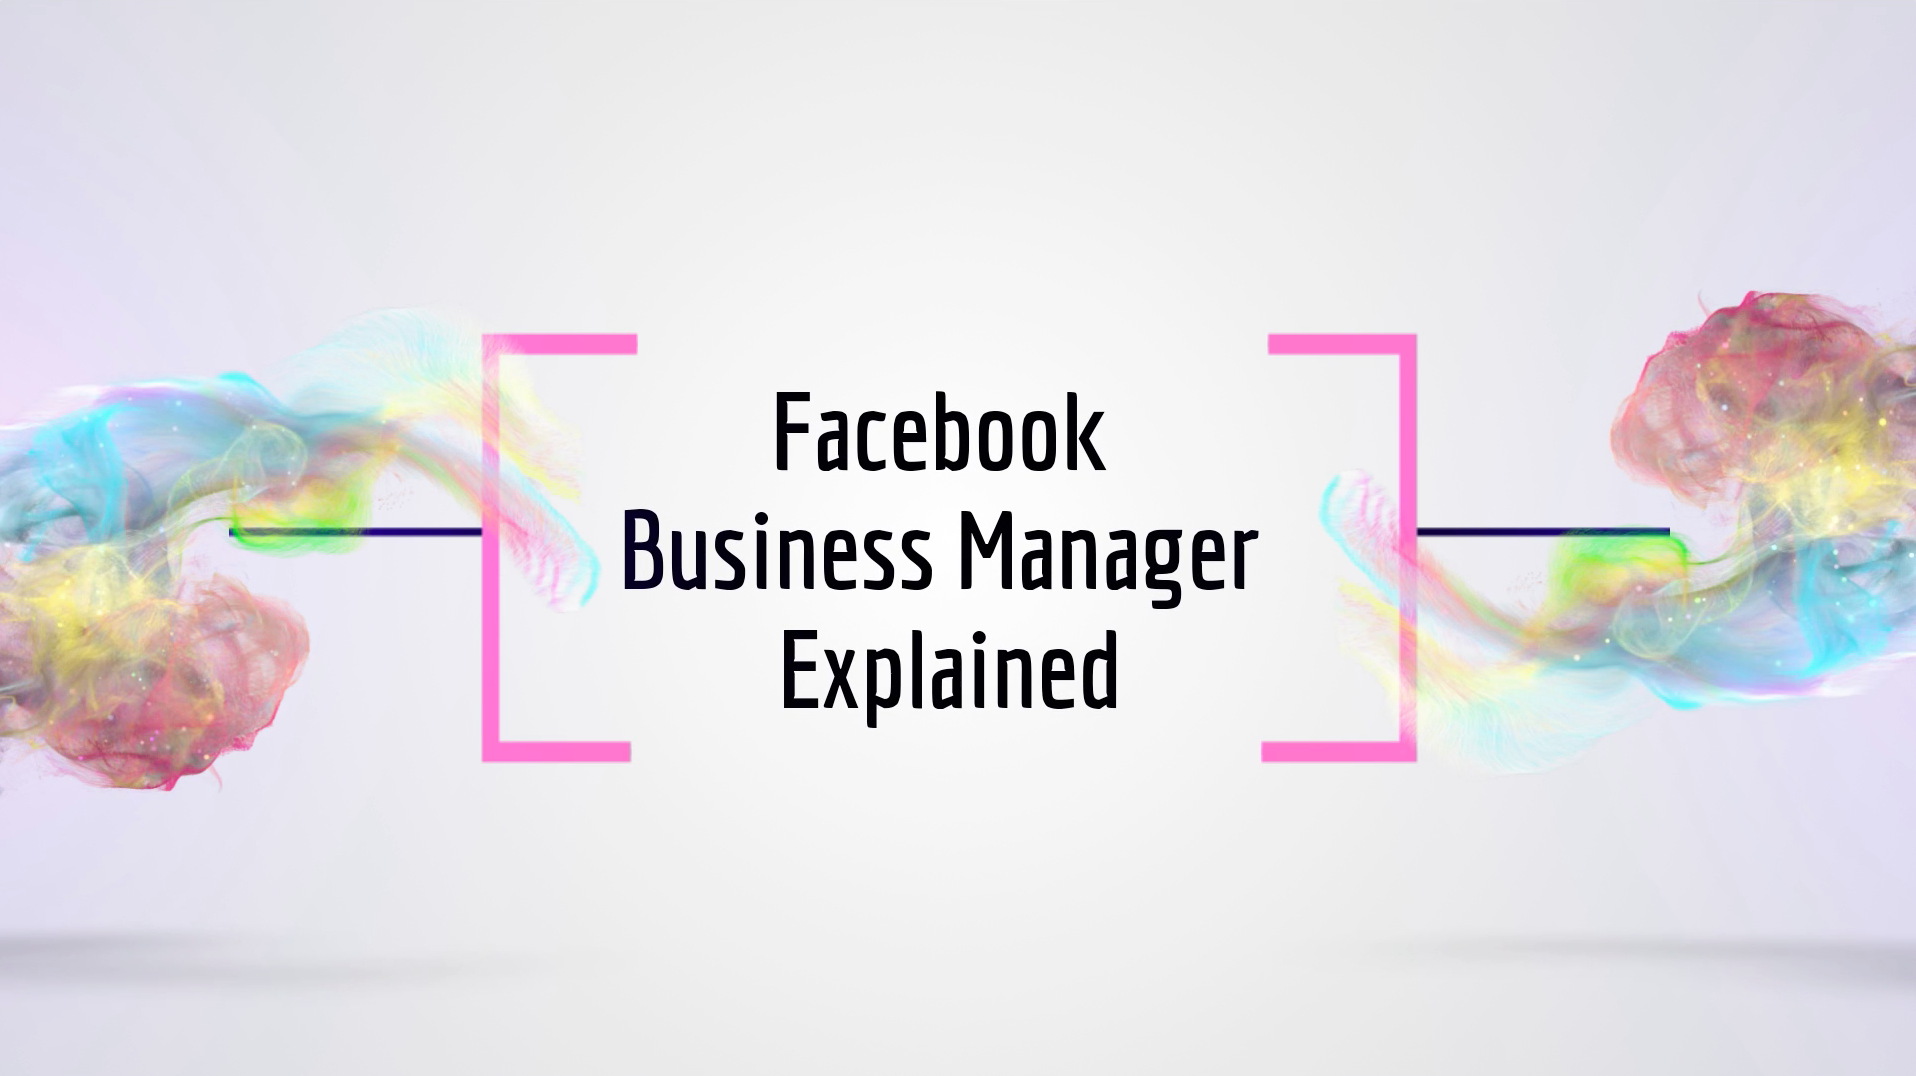 Facebook Business Manager Explained